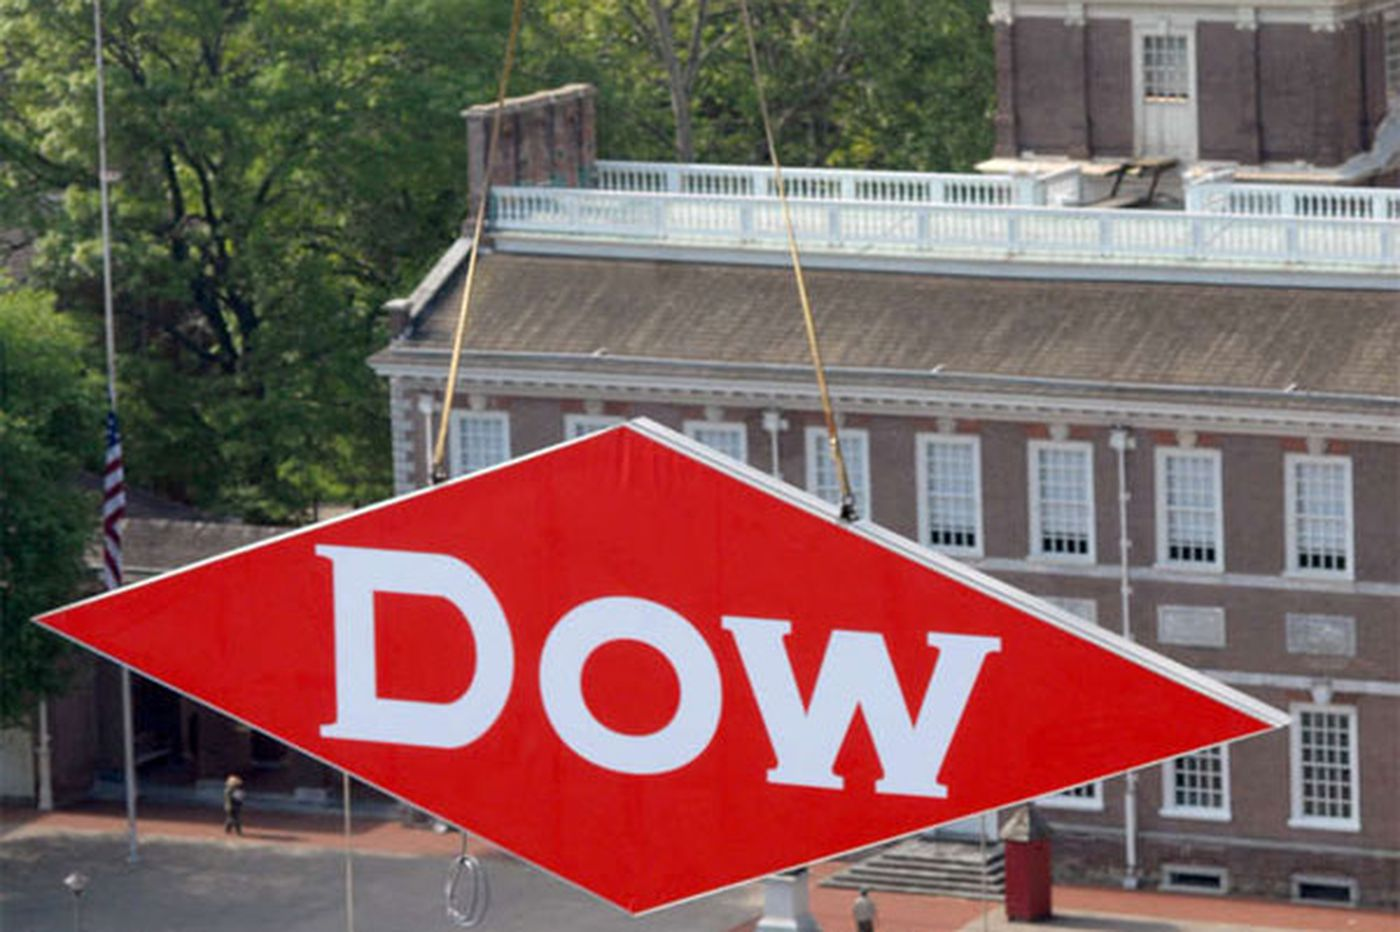 Dow wins EPA honor for paint ingredient